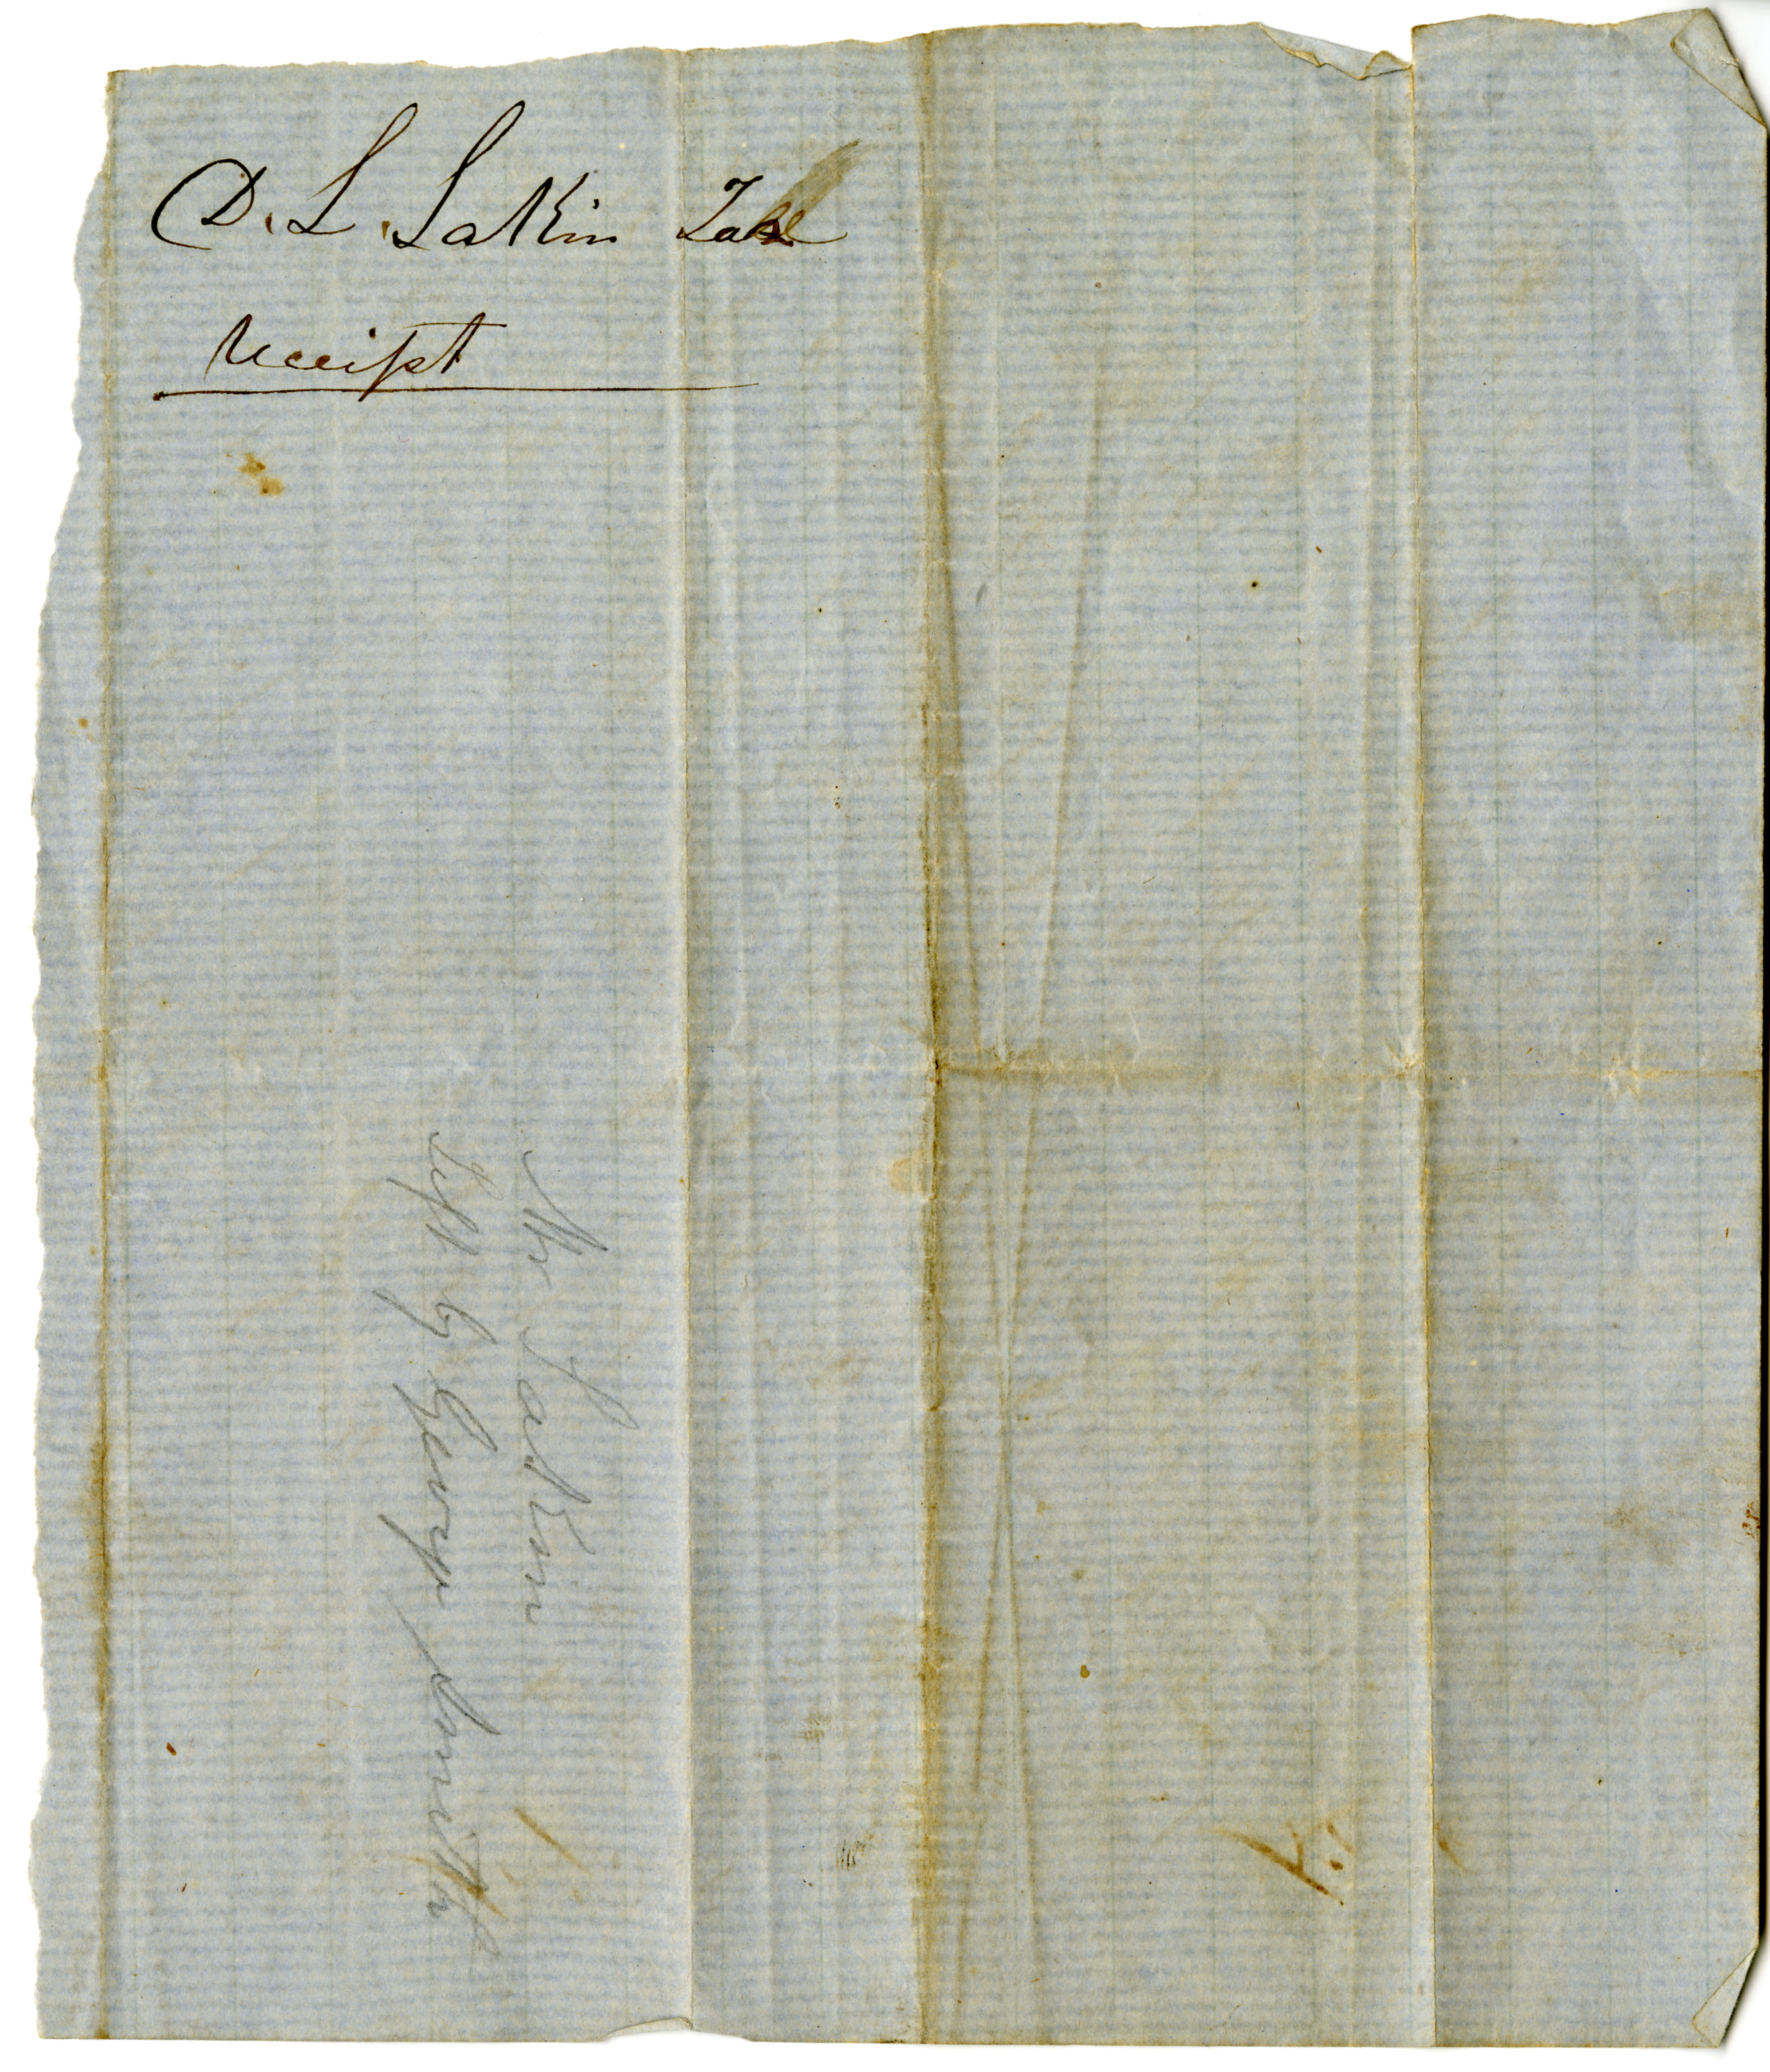 Tax receipt to George Smith for David L. Lakin from Franklin Township, Calhoun County, Kansas Territory